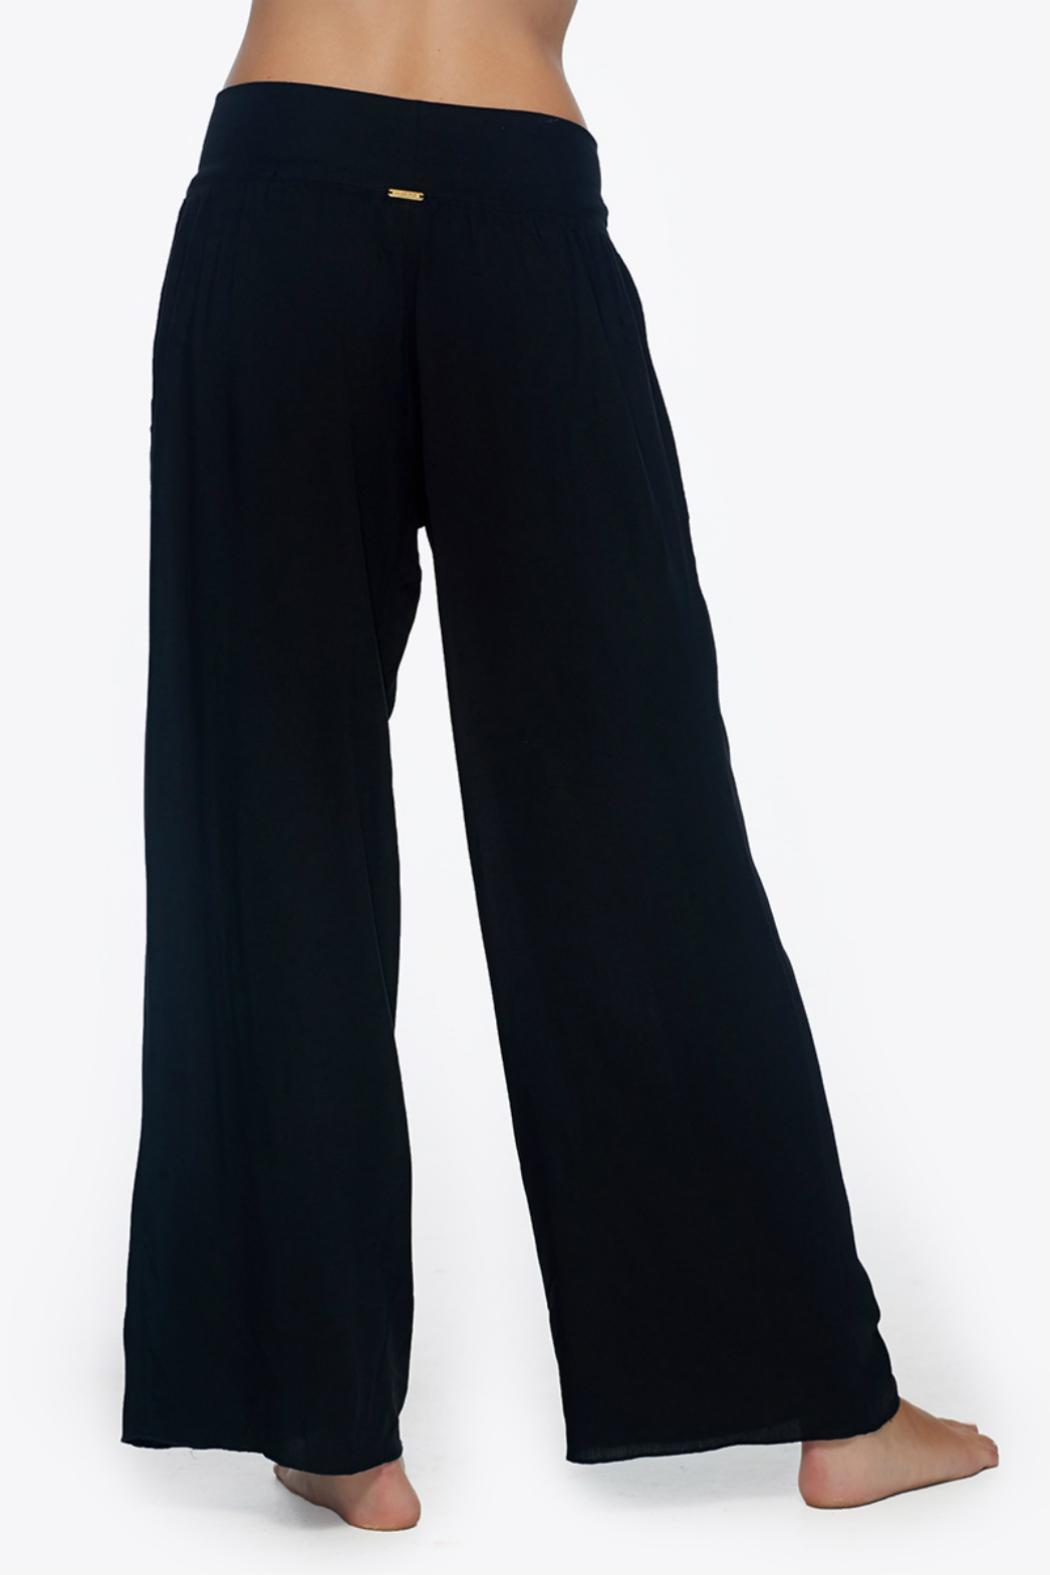 BODY GLOVE Sian Pant - Side Cropped Image